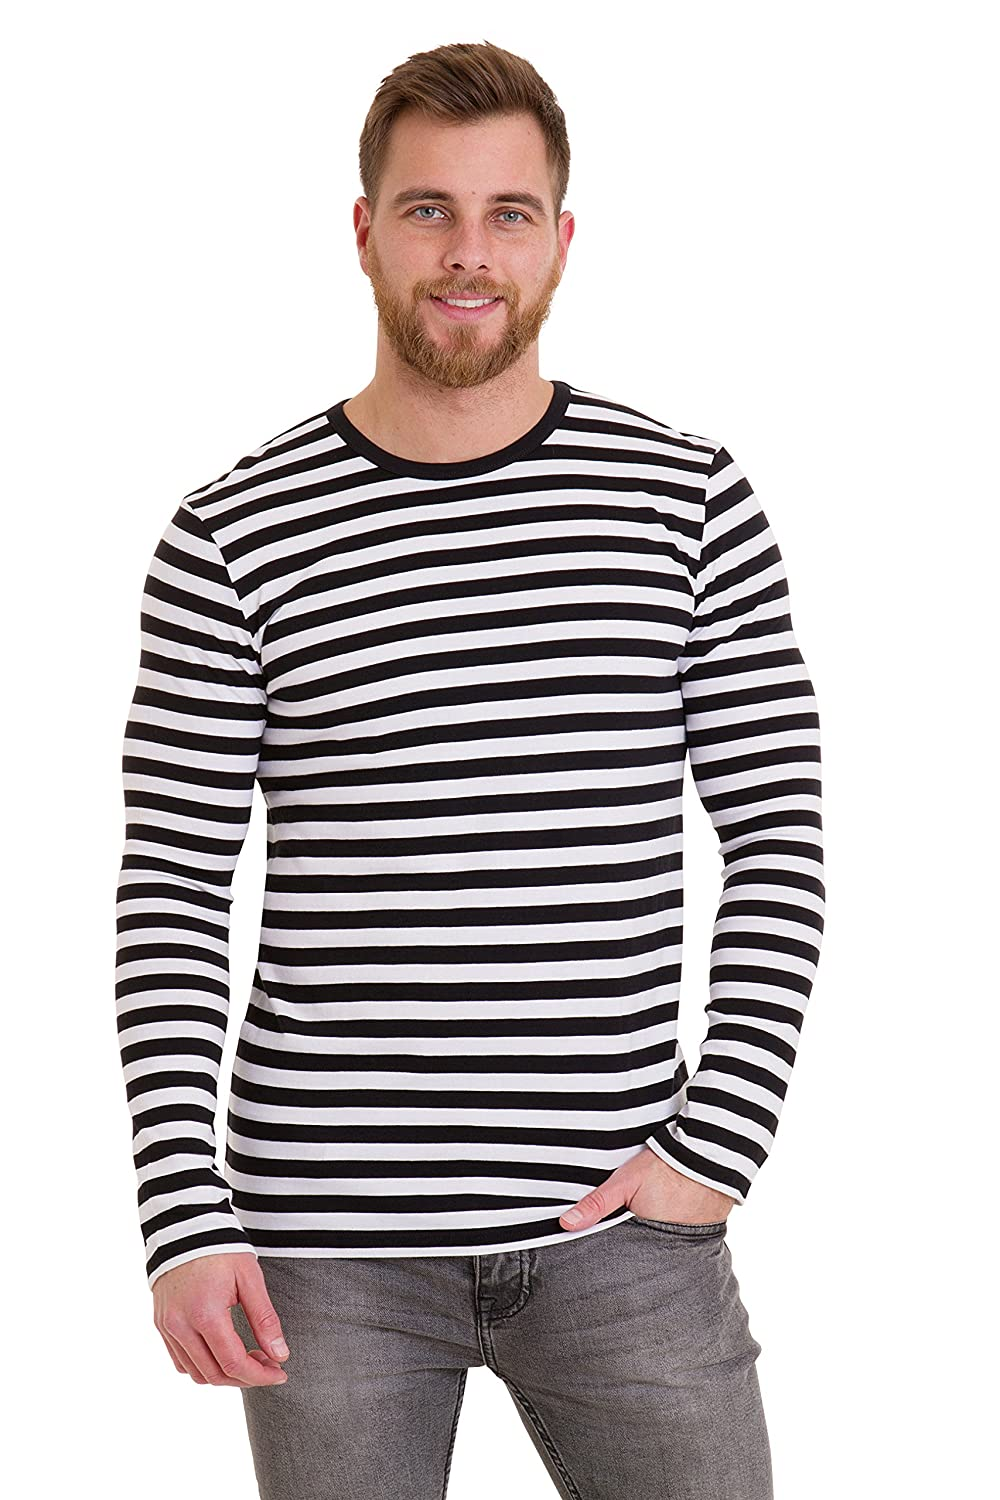 1940s Mens Clothing Mens 60s Retro Black & White Striped Long Sleeve T Shirt $19.95 AT vintagedancer.com